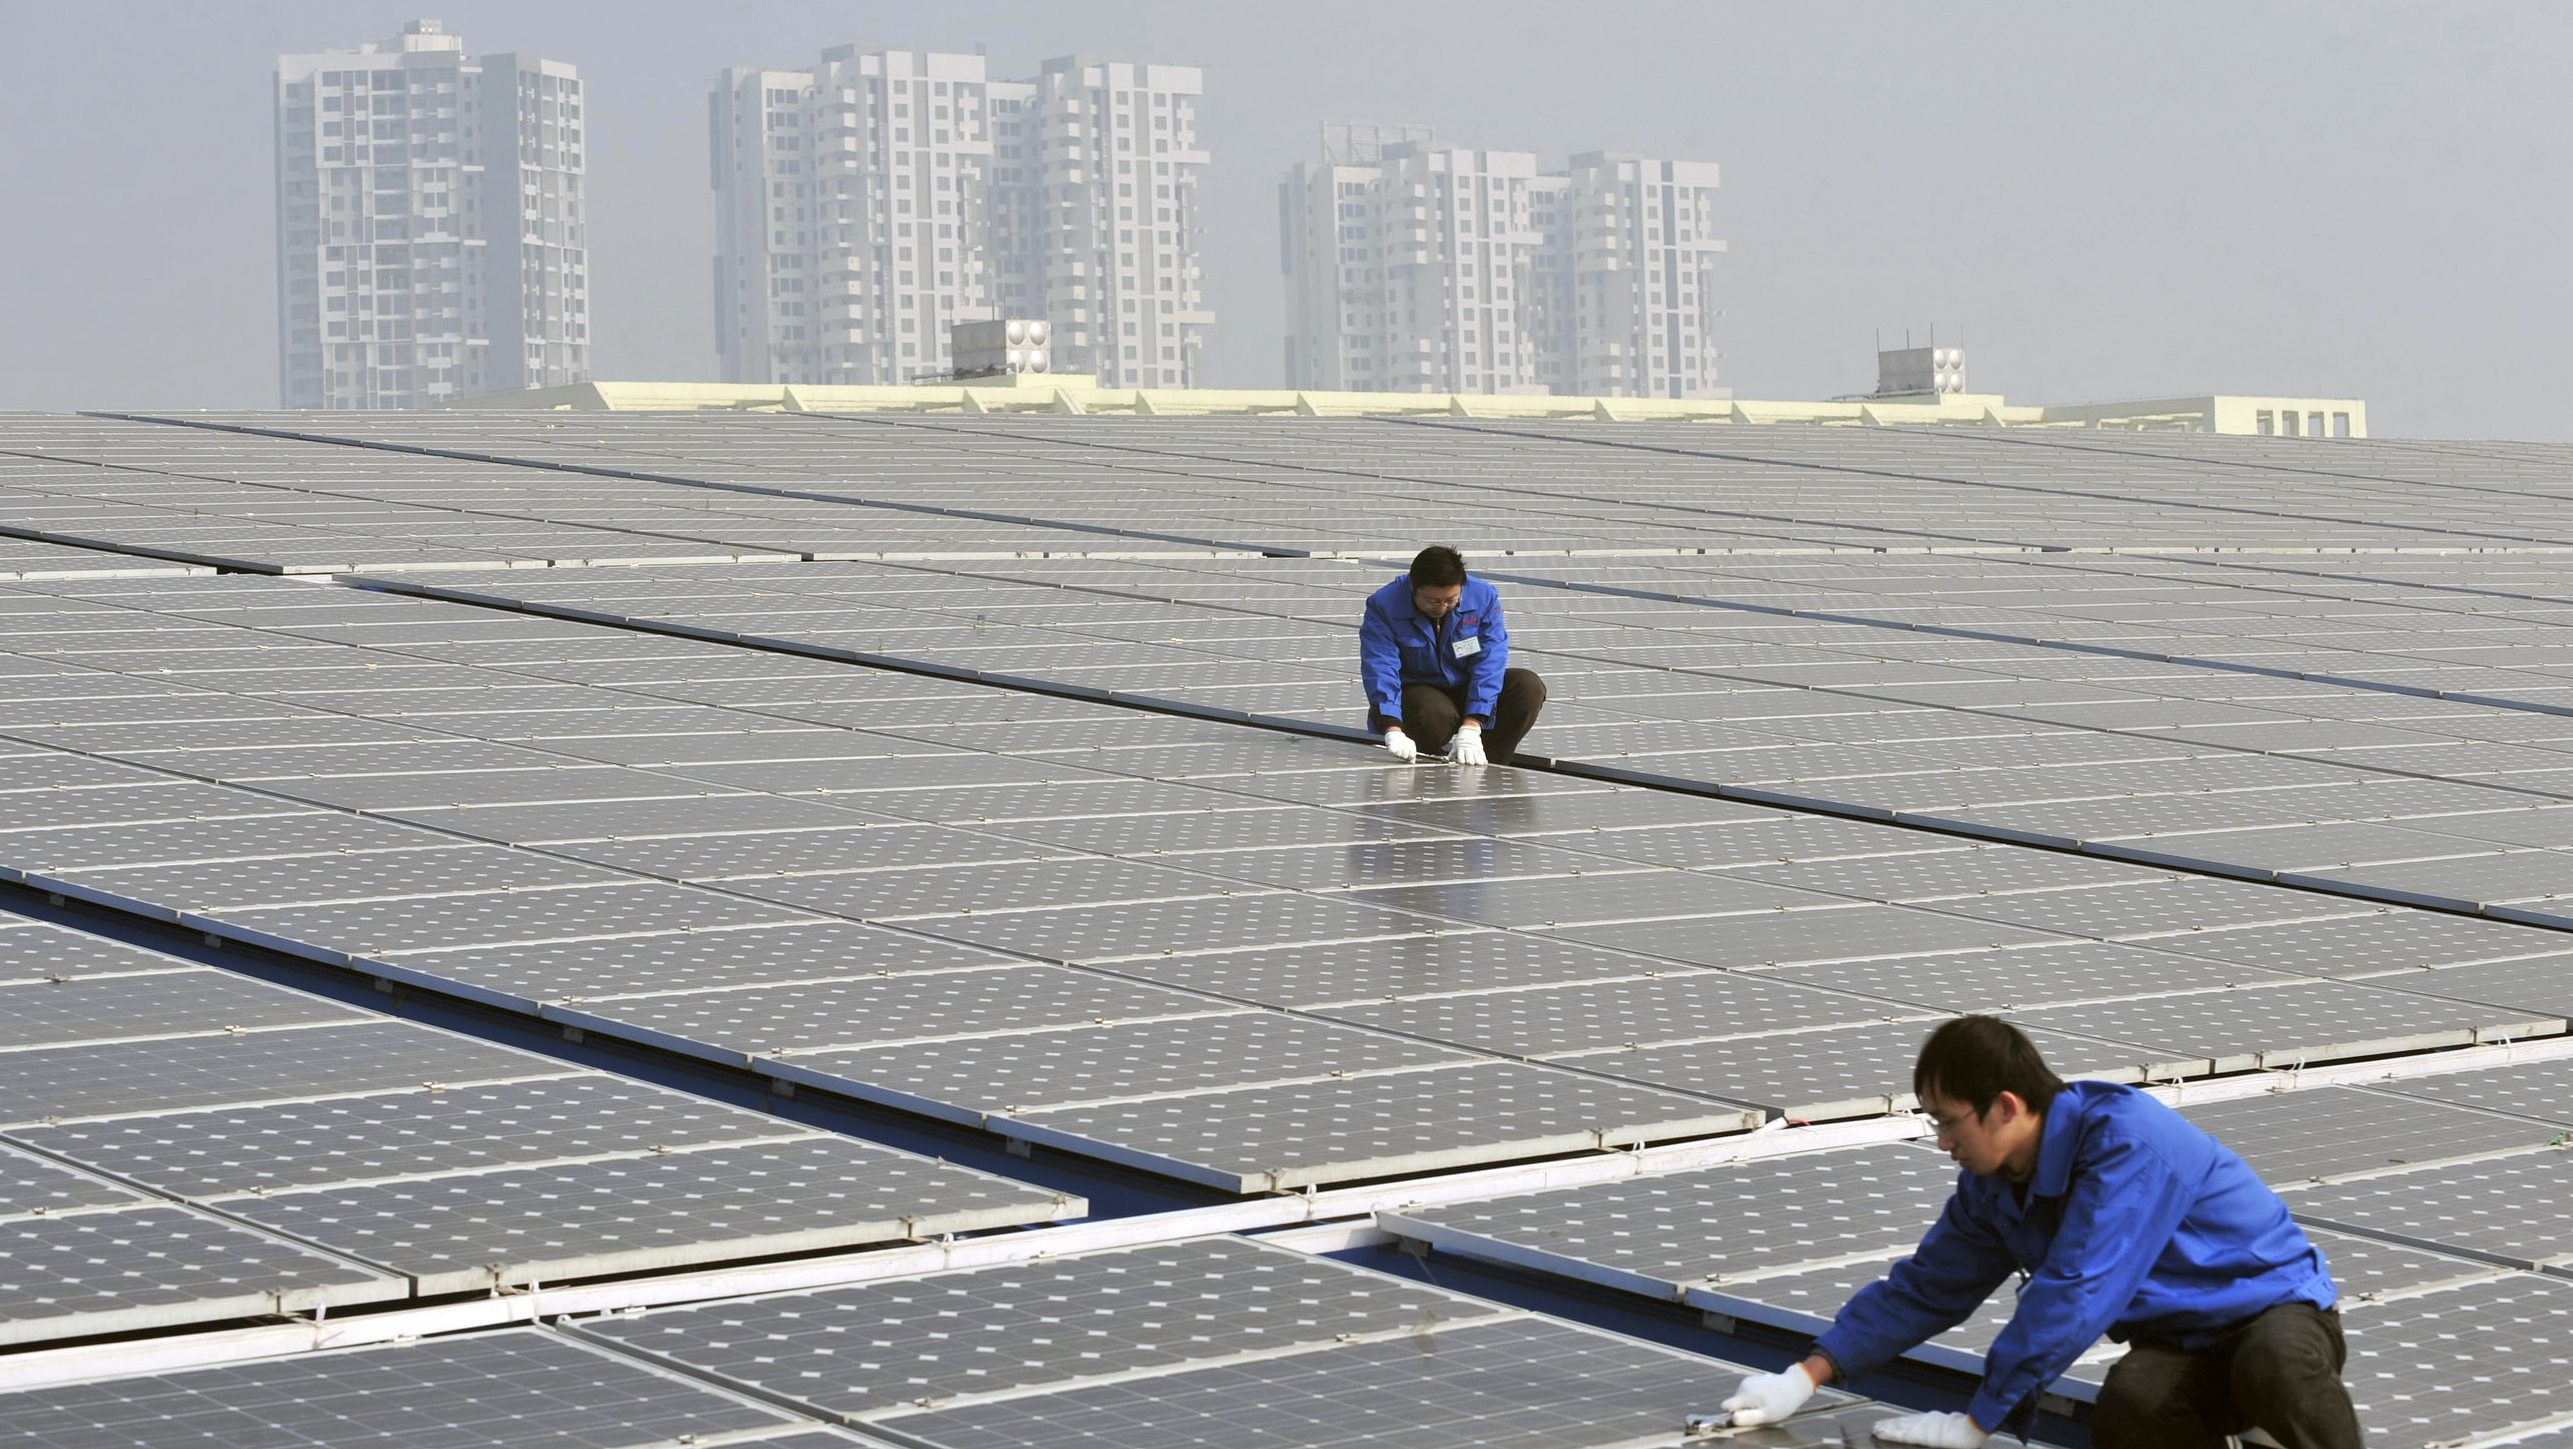 Technicians maintain solar panels on a roof at a solar power plant in Wuhan, Hubei province, January 12, 2010. The Chinese government aims to boost renewable energy generating capacity in the country, with plans to produce at least 10,000 MW of solar energy and 20,000 MW of wind power by 2020. Picture taken January 12, 2010. REUTERS/China Daily